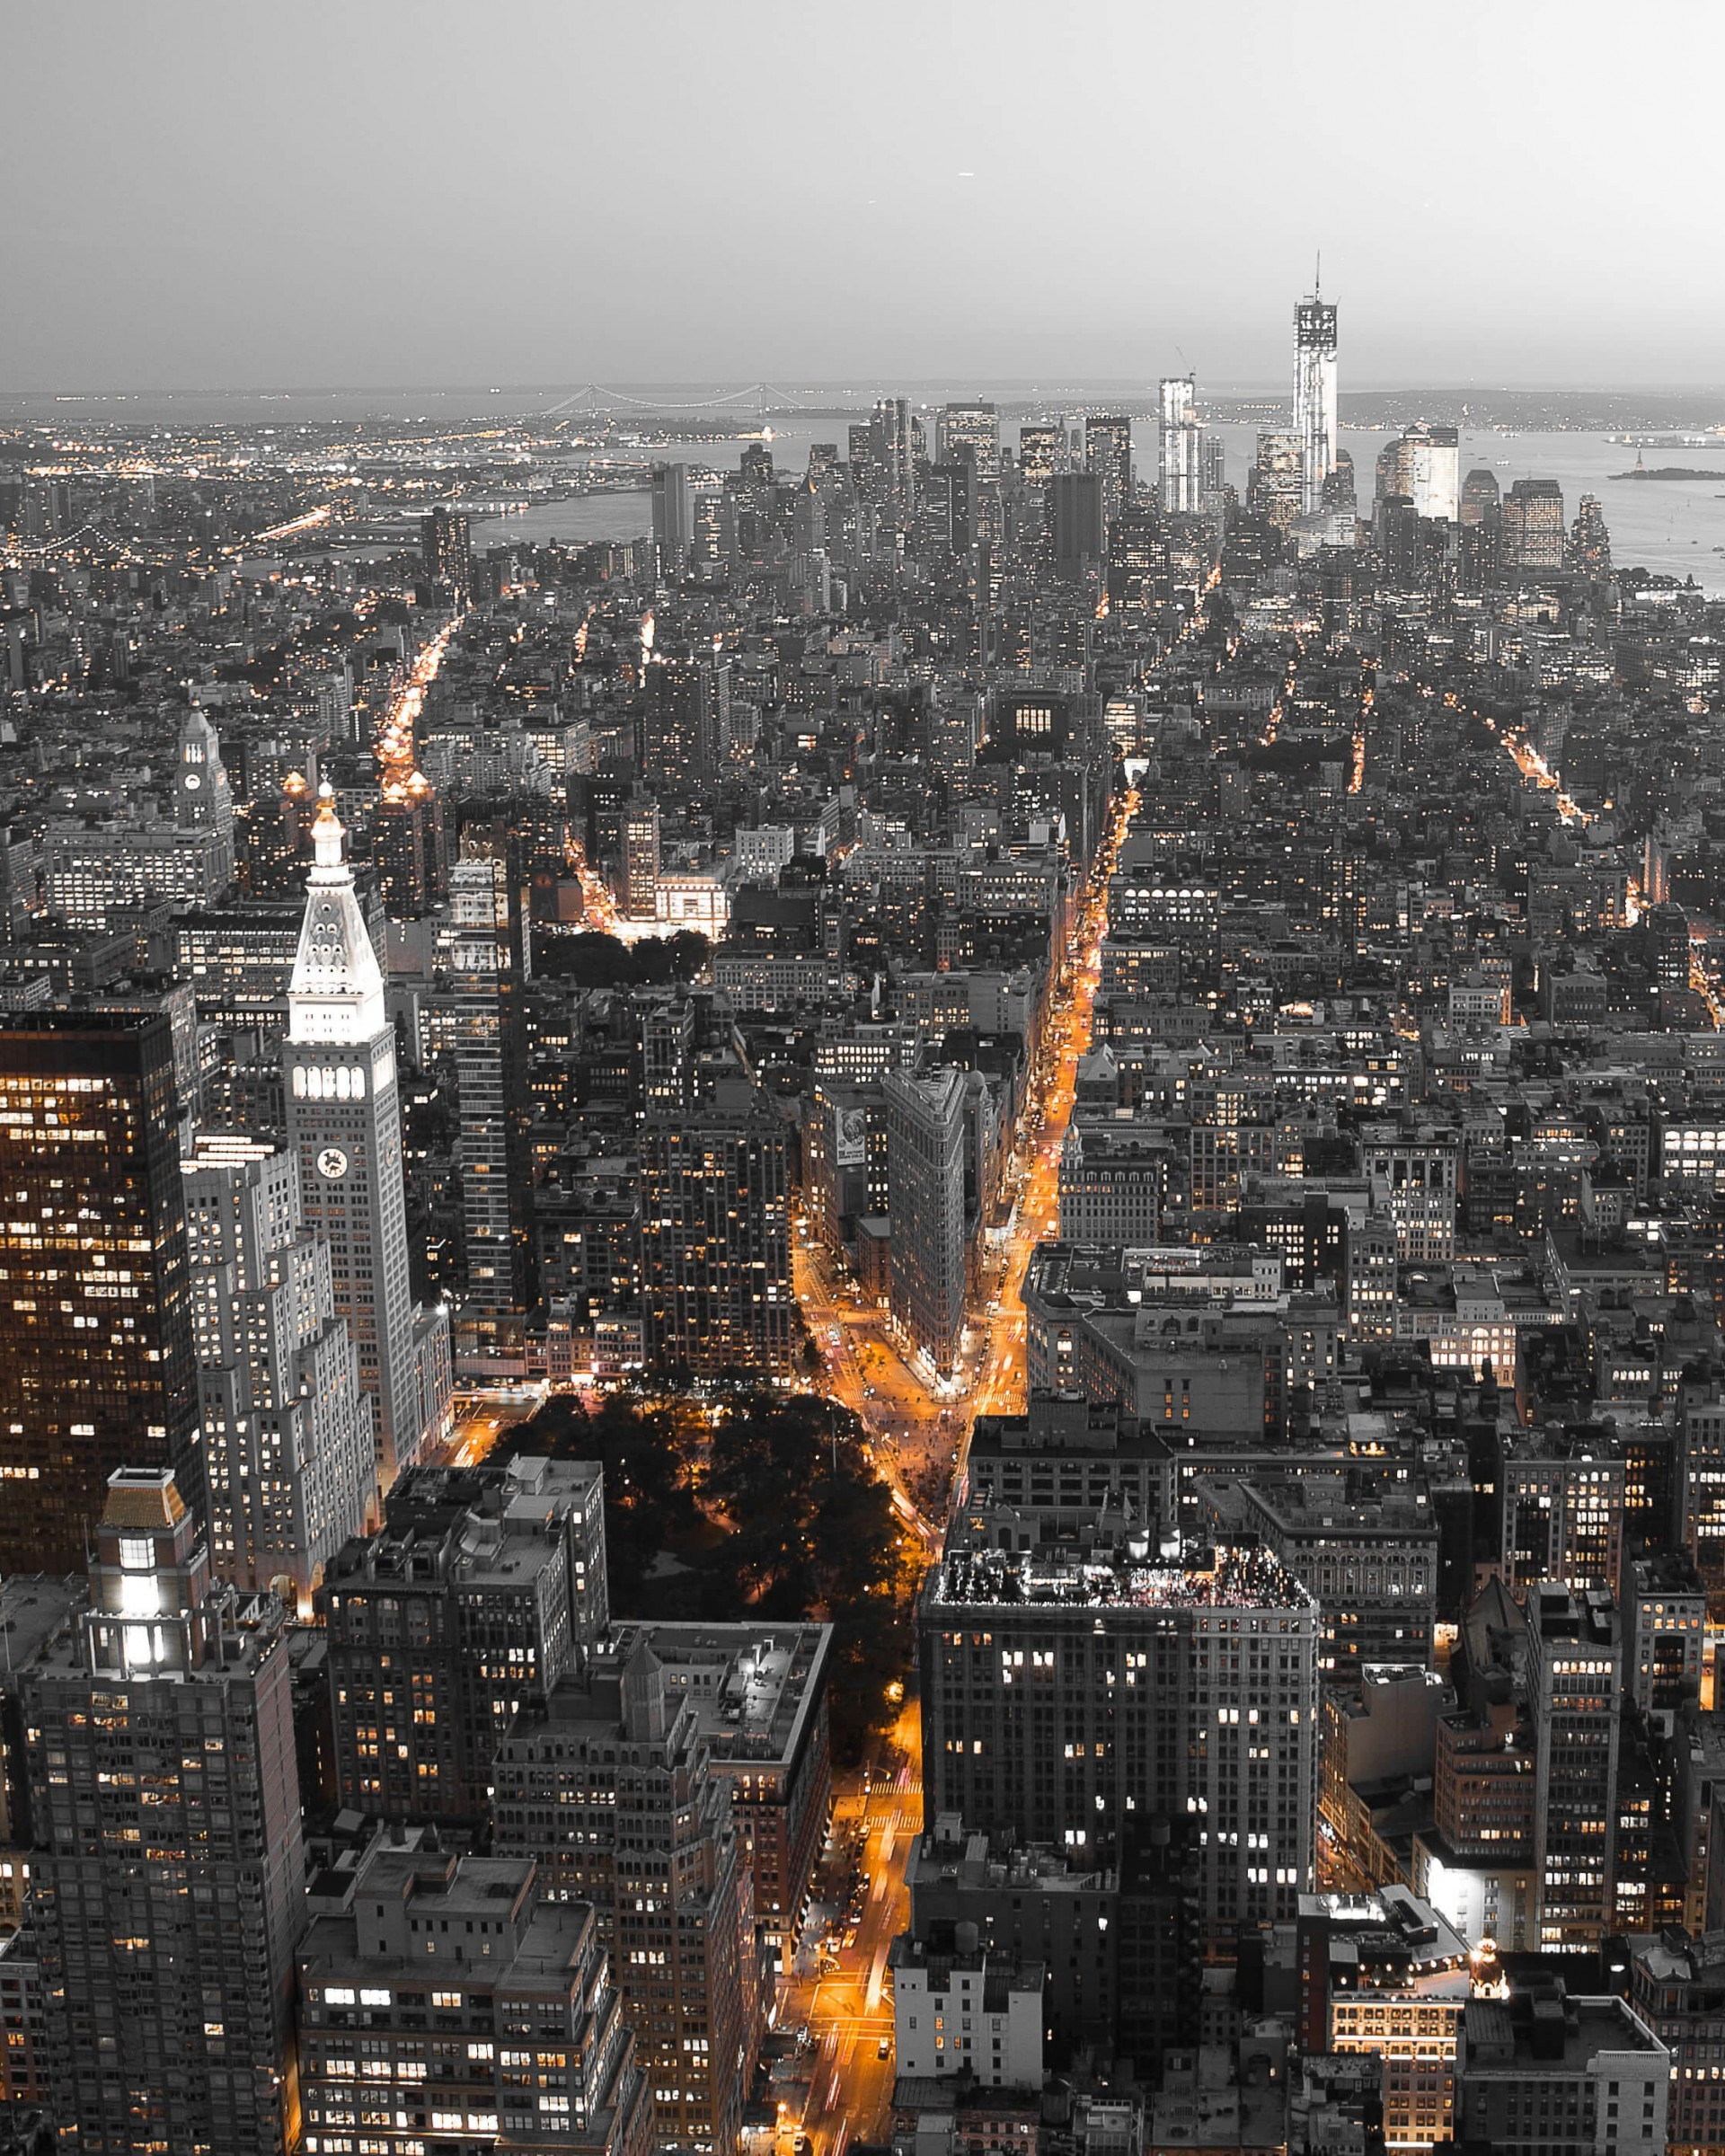 New York City by Night Wallpaper for Google Nexus 7